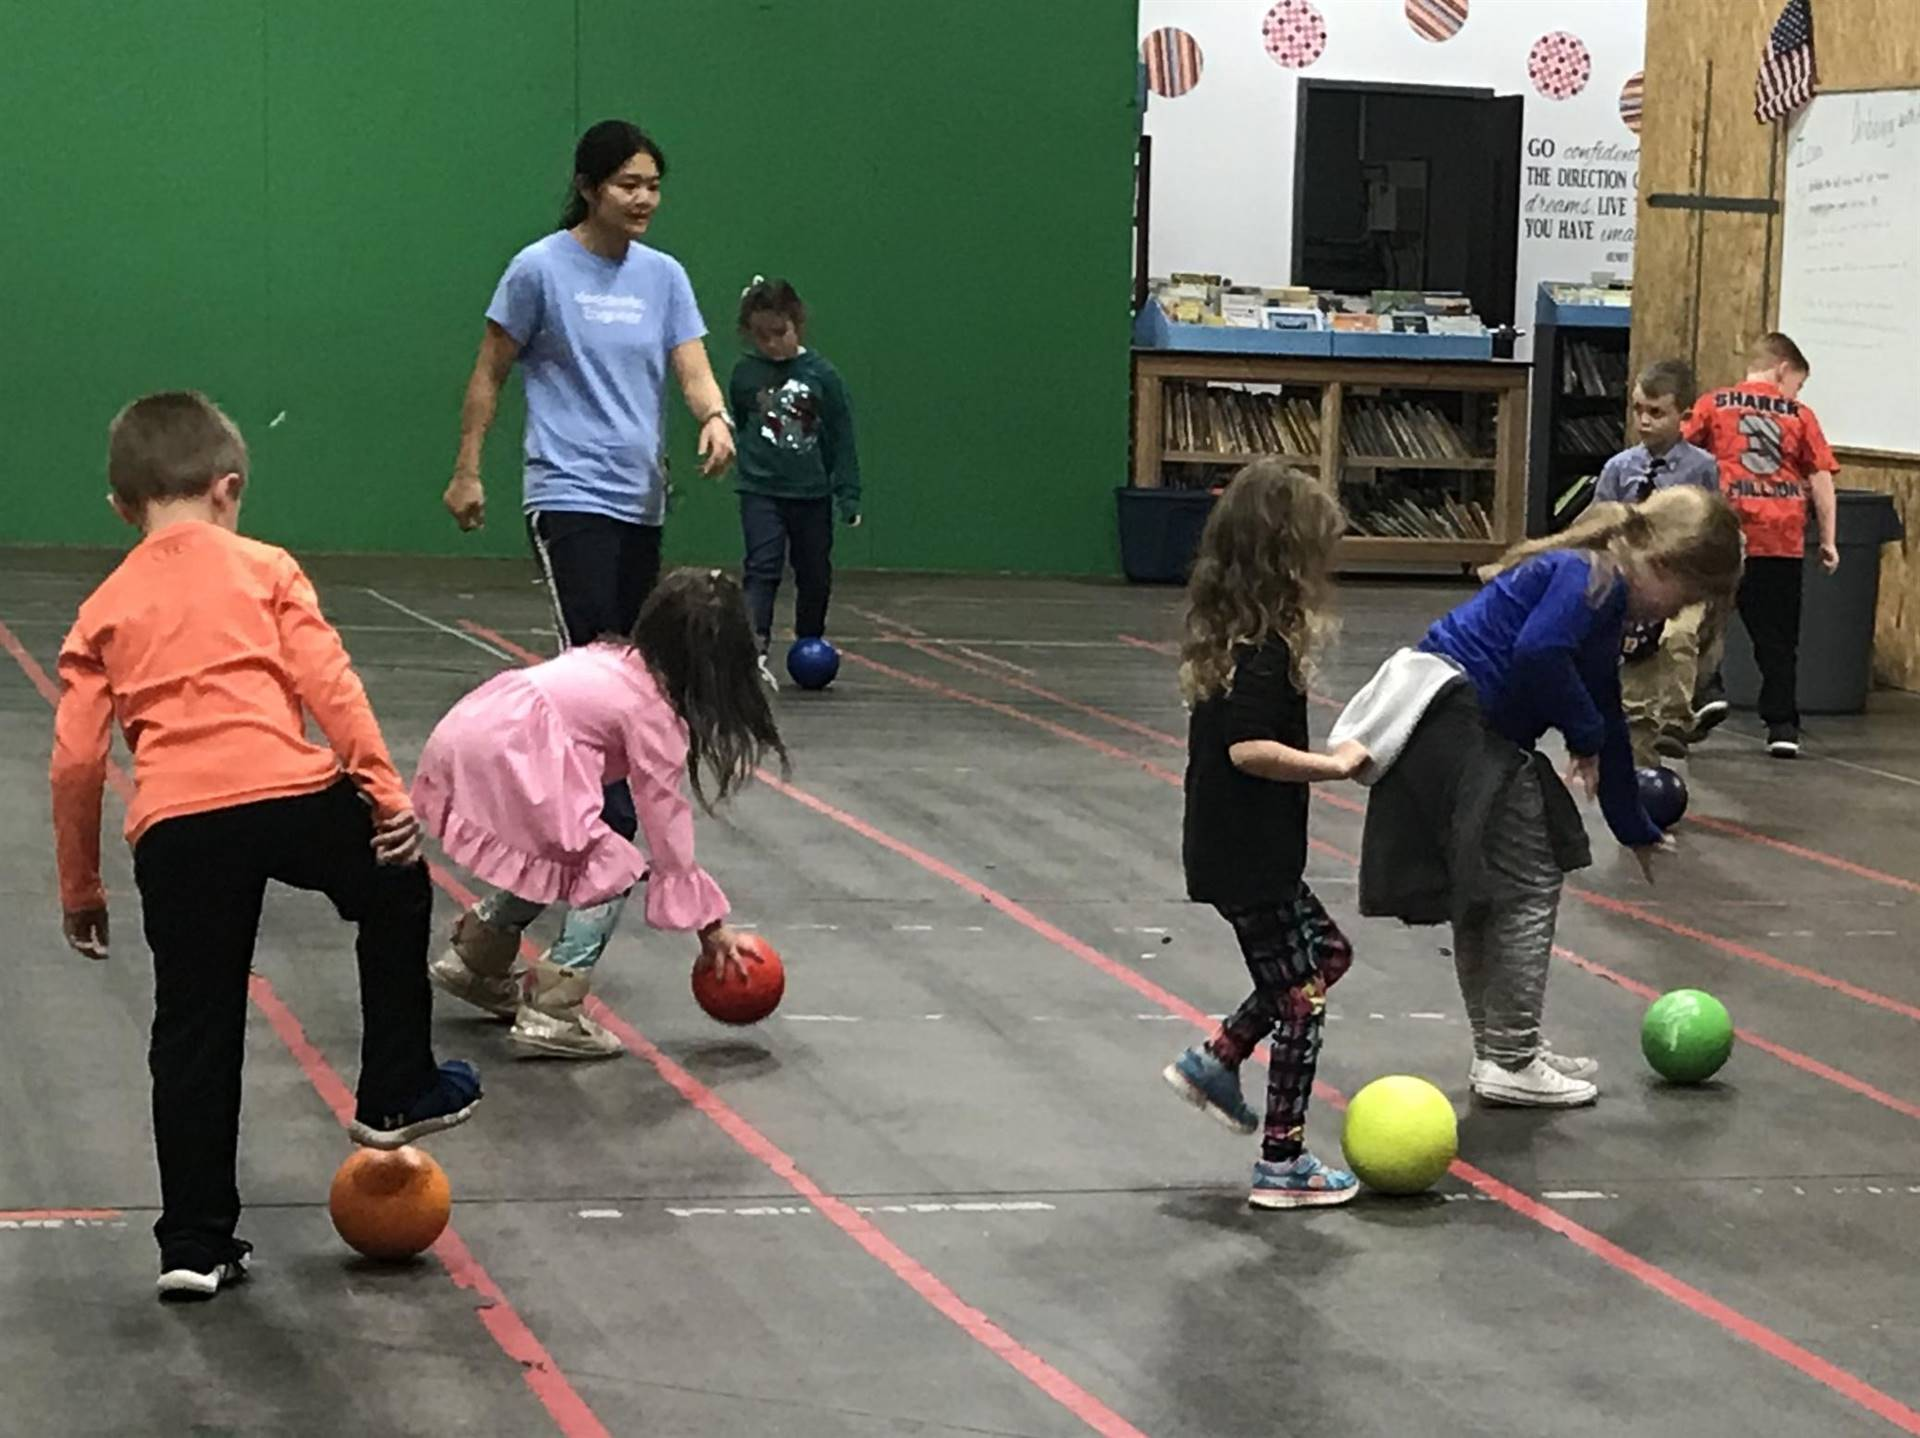 Students and a teacher playing with balls